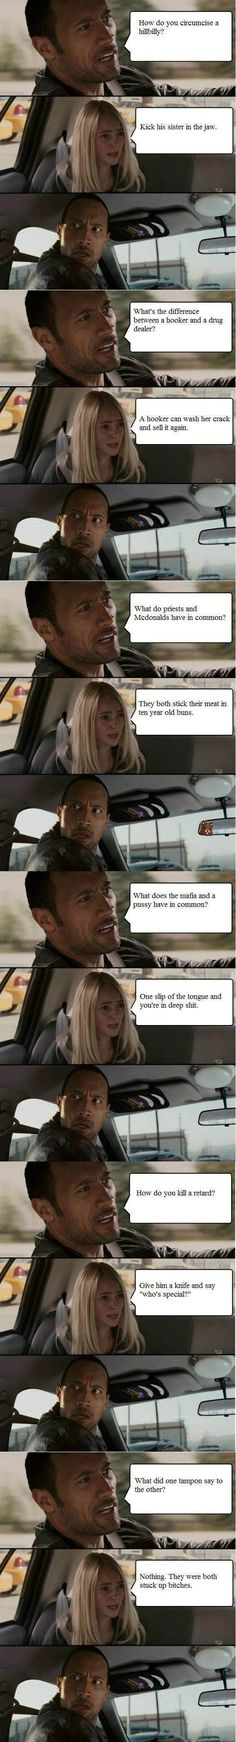 The Rock - Dirty Jokes - Funny Pictures - Funny Photos - Funny Images - Funny Pics